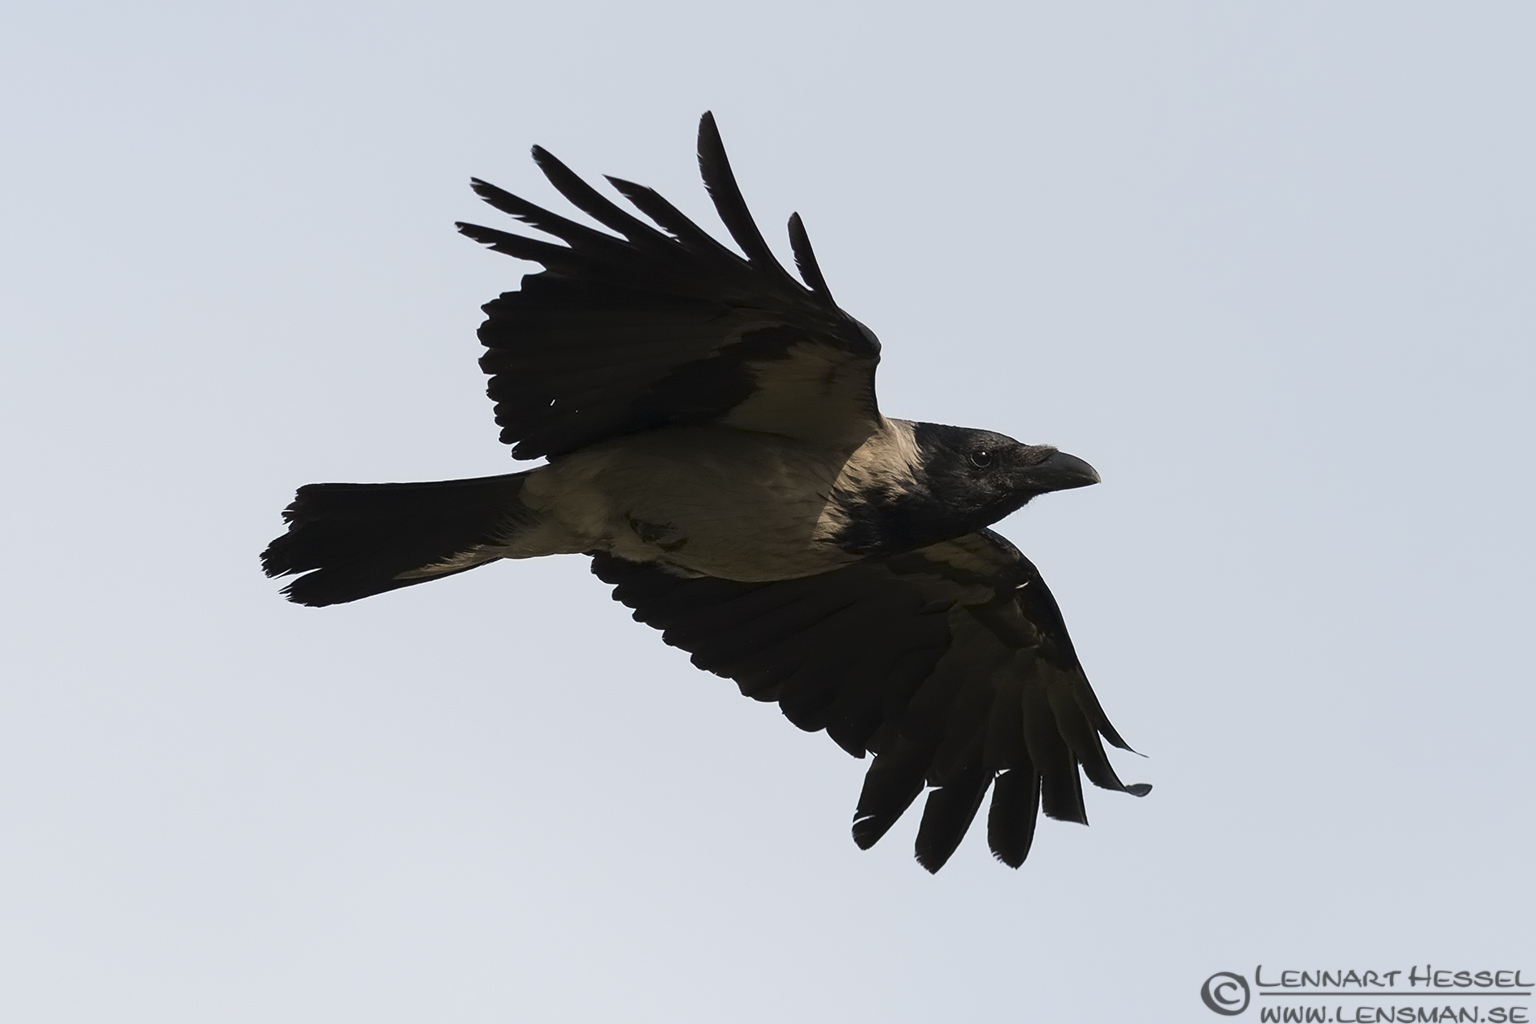 Hooded Crow catch